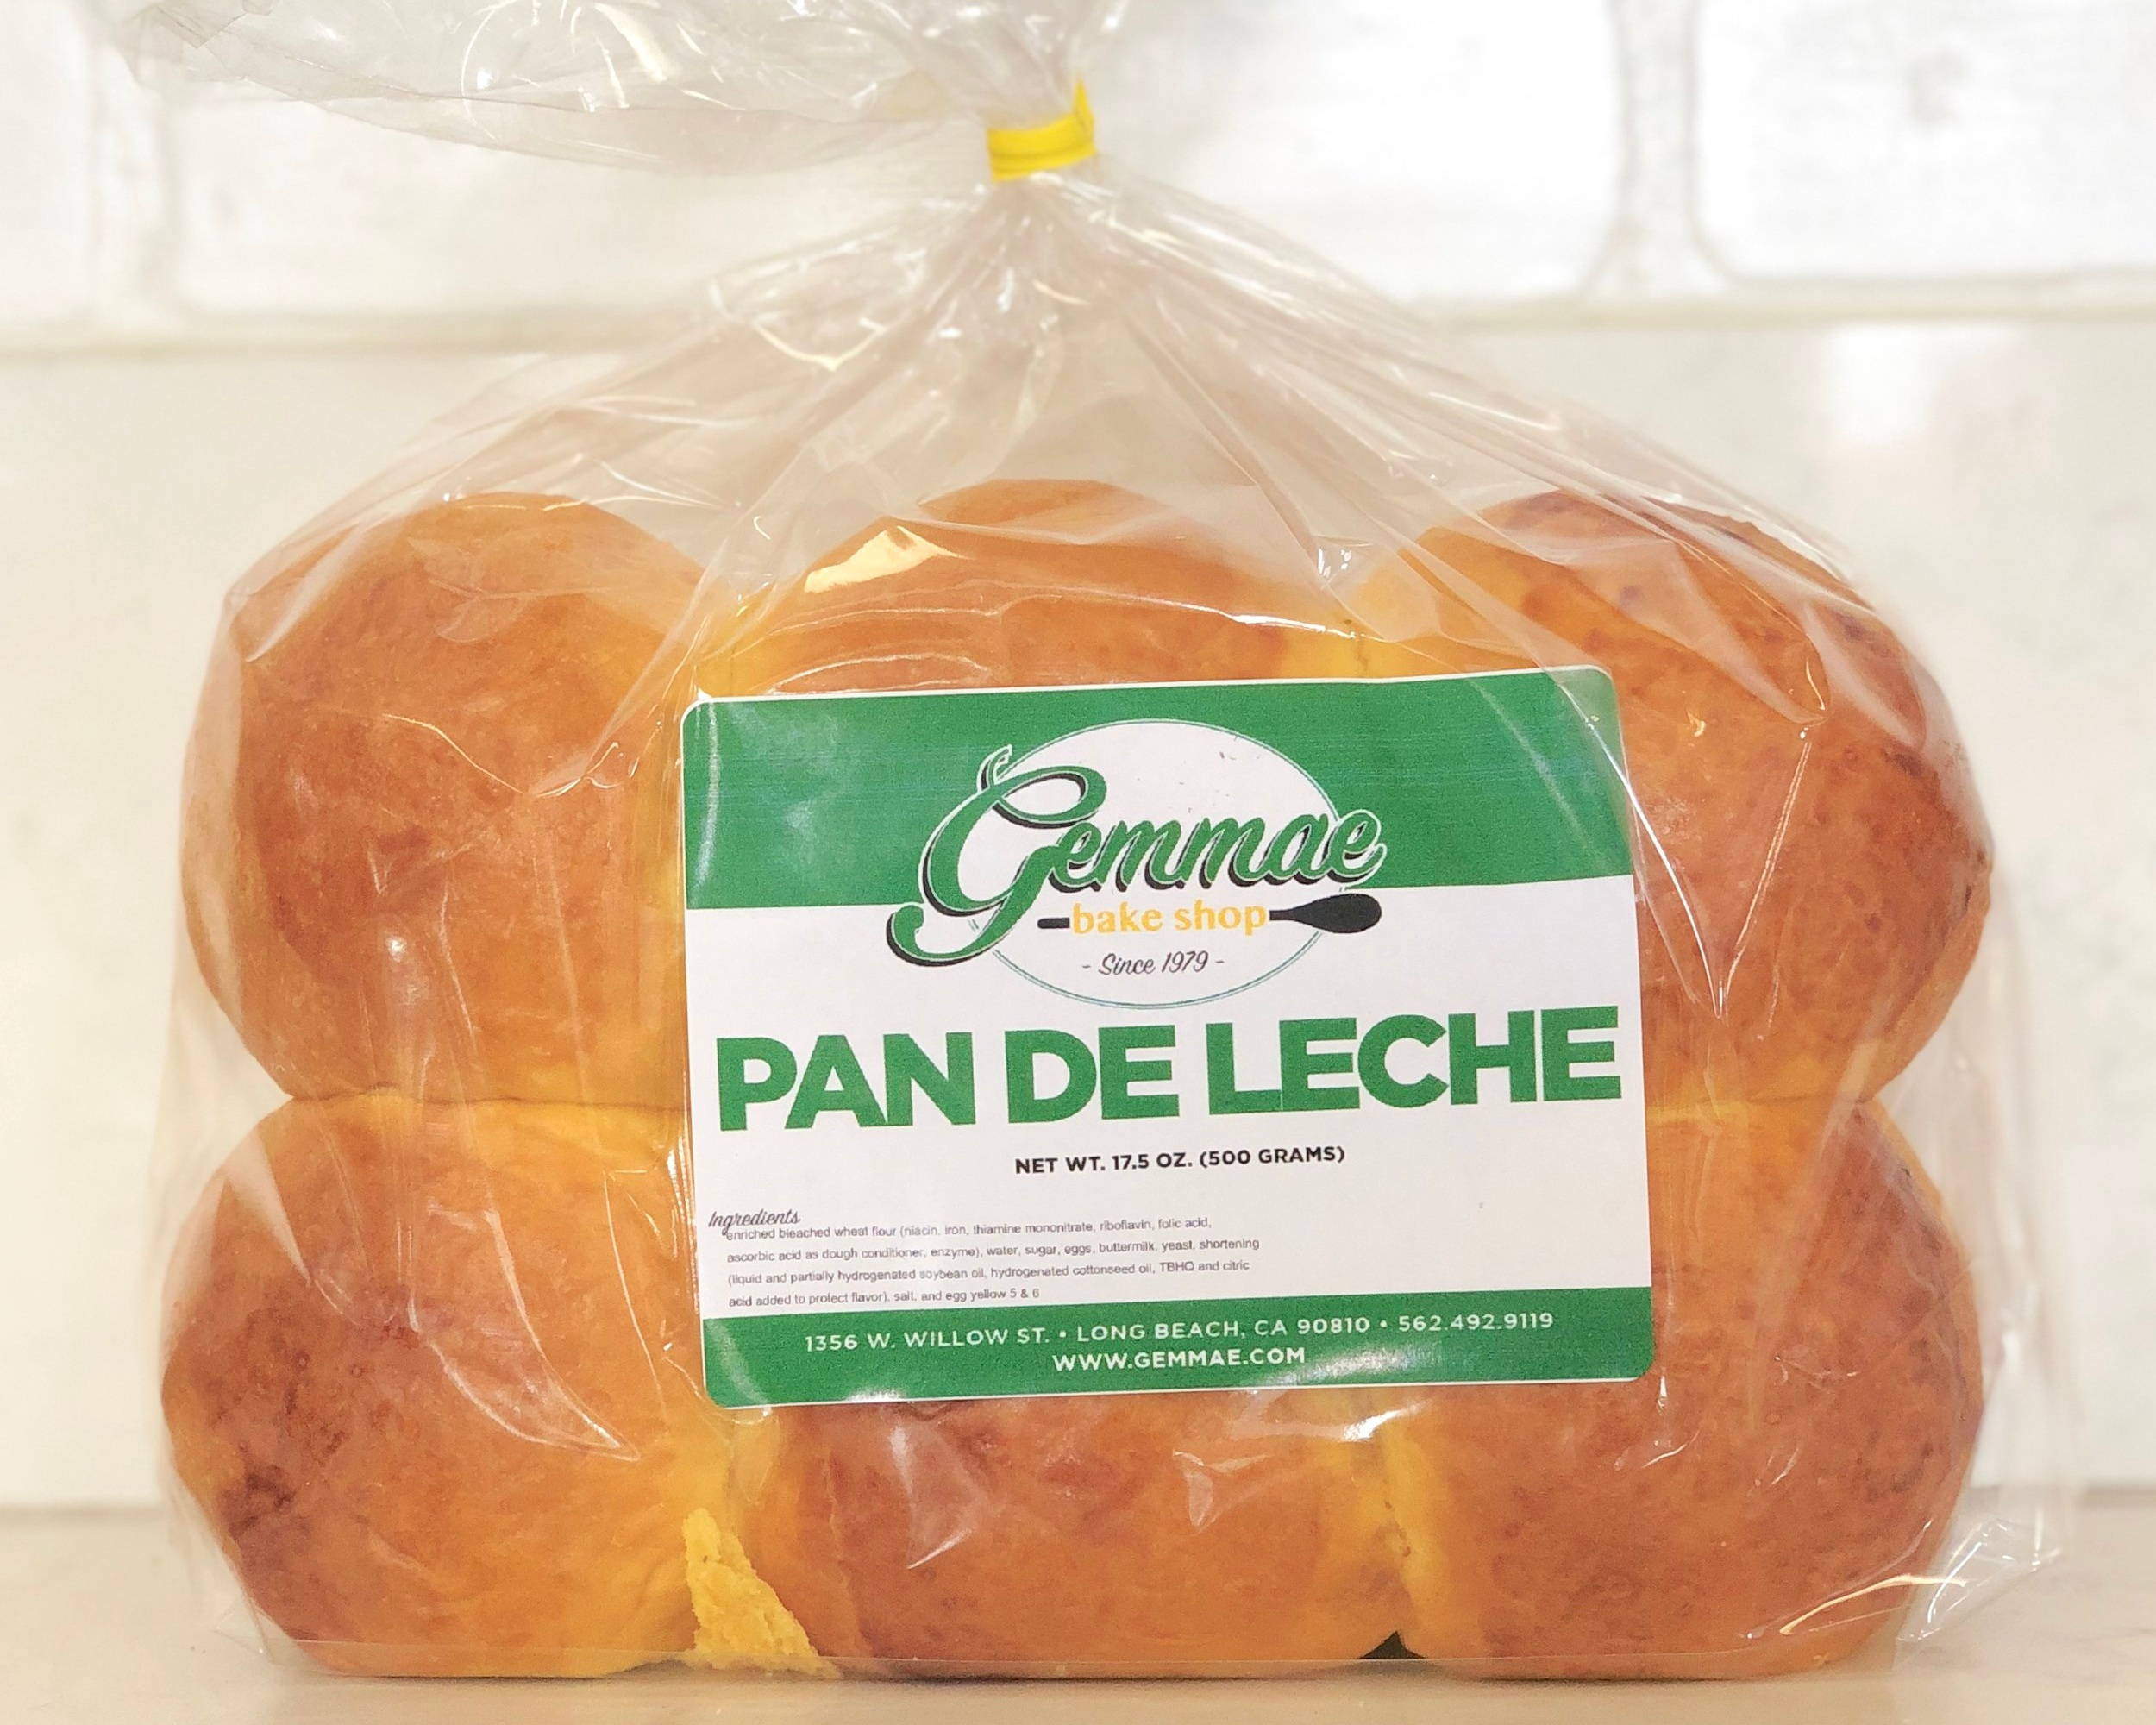 PAN DE LECHE   Soft, sweet and slightly larger than your average Hawaiian bread. Each bag contains 12 buns. Best when toasted.